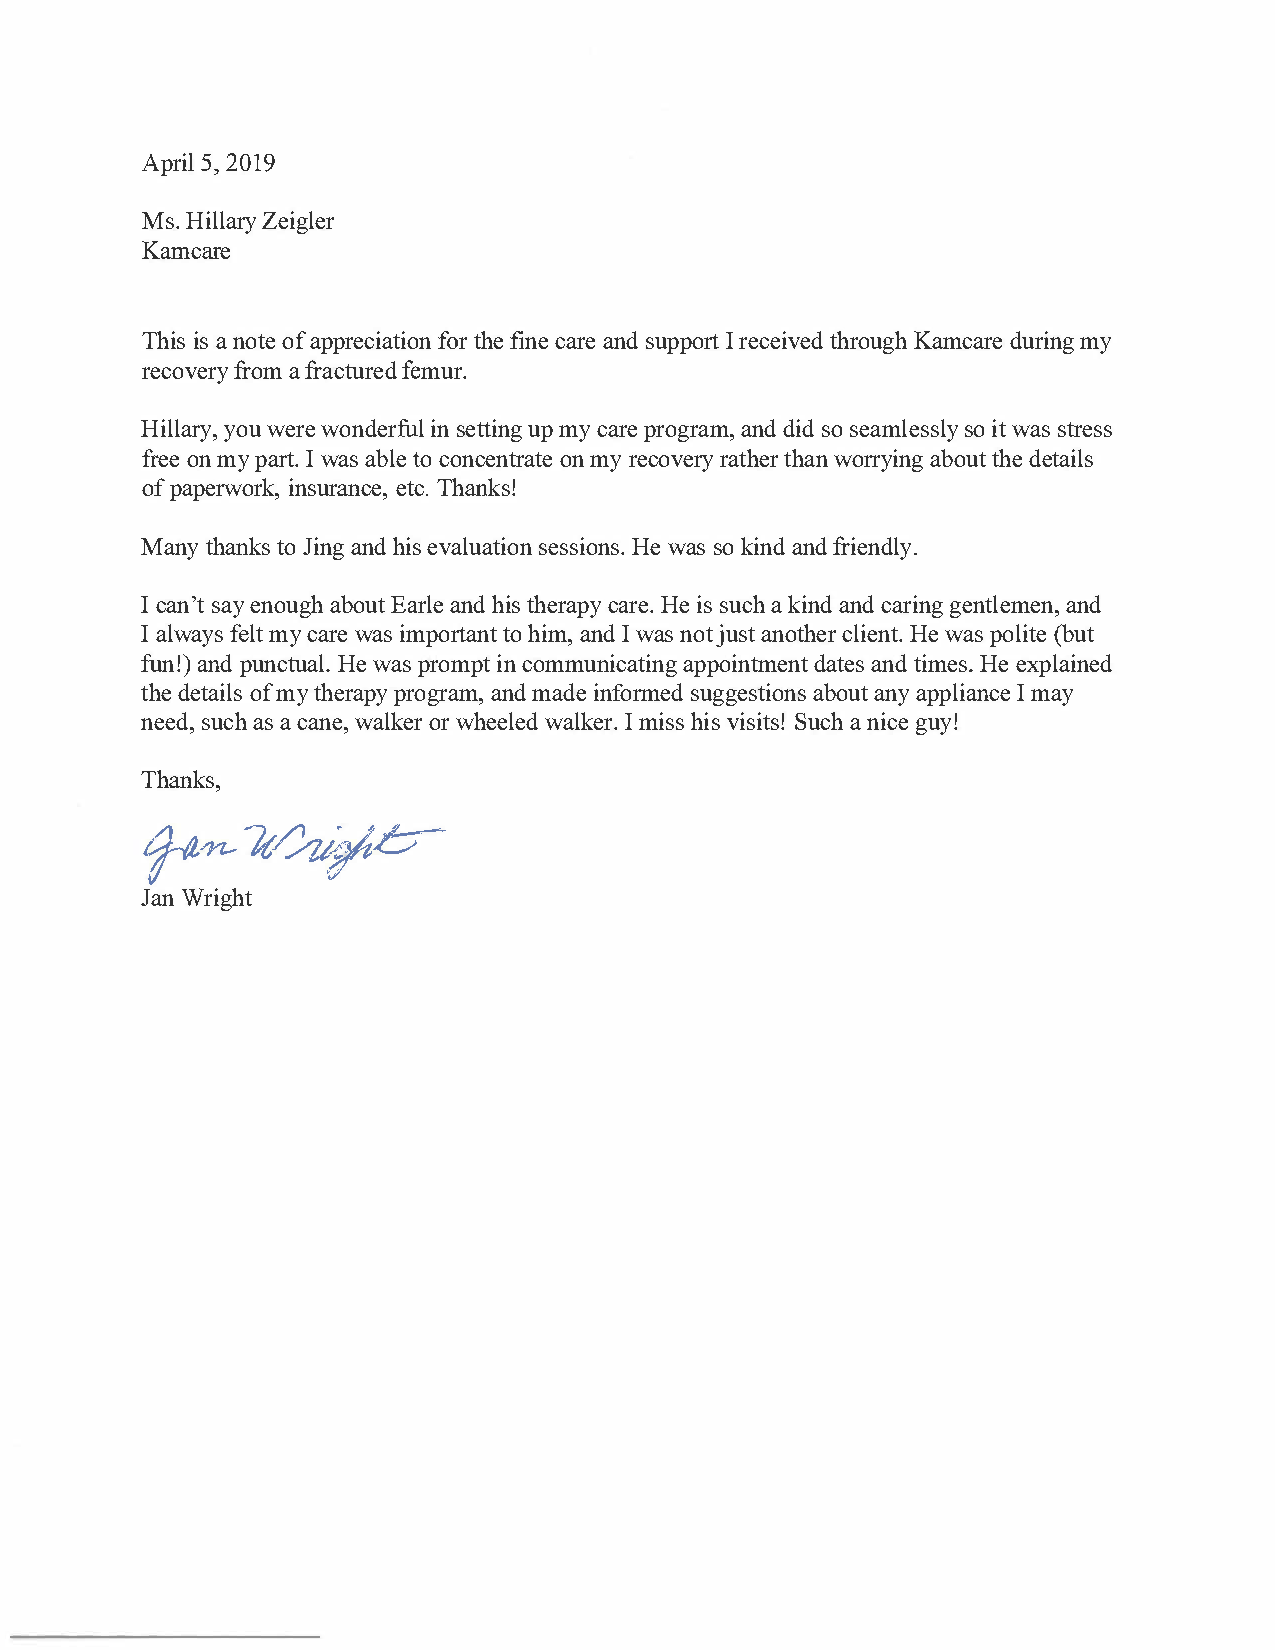 Jan Wright Letter of recommendation.png